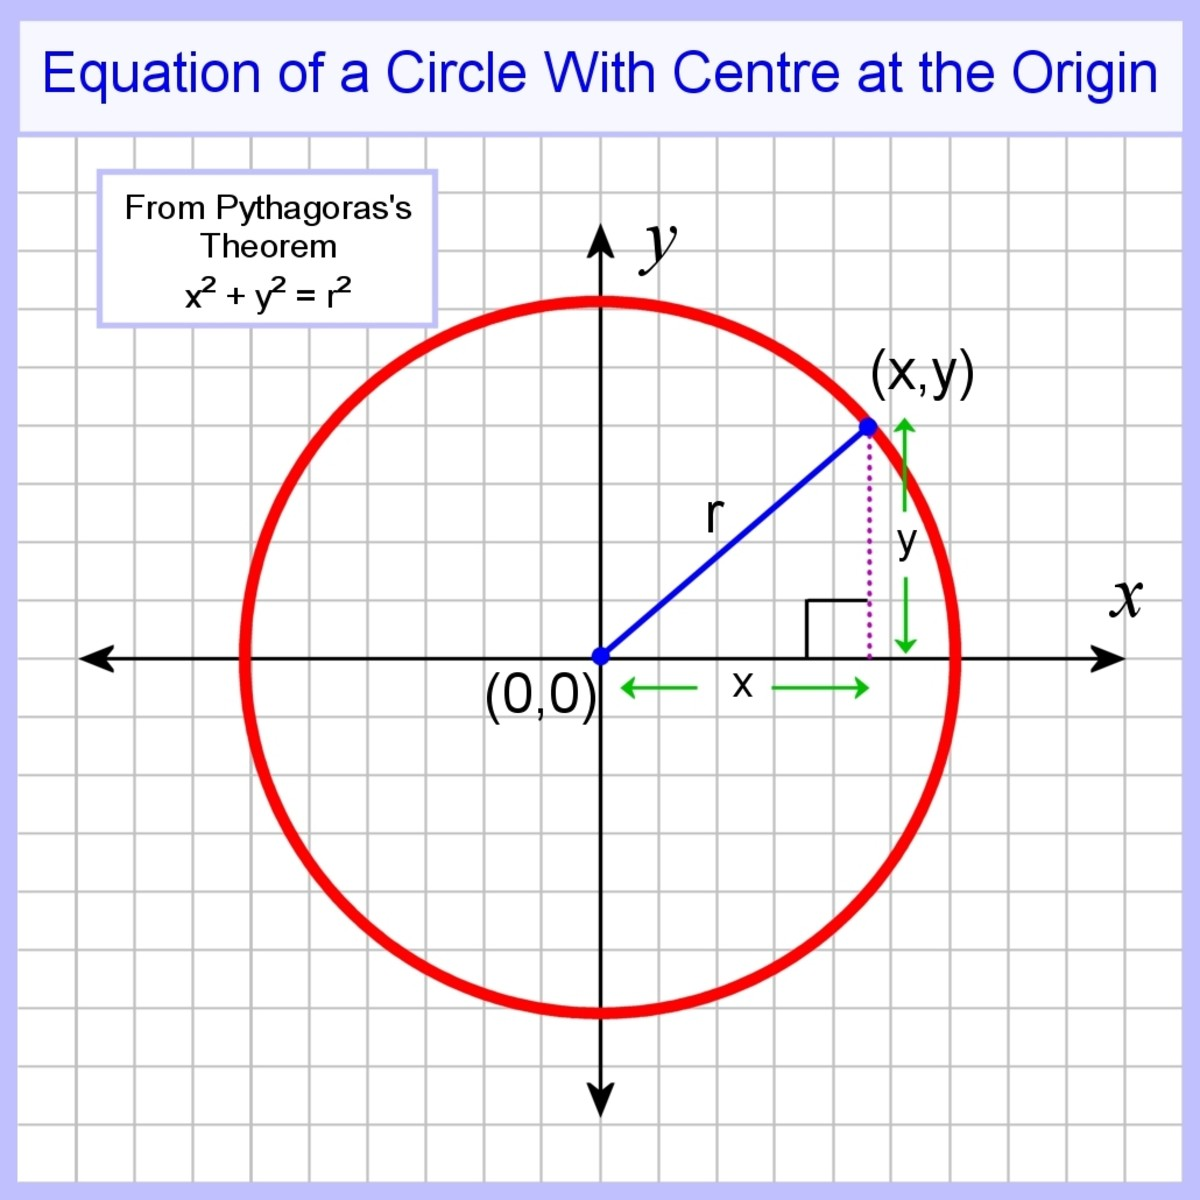 The equation of a circle with a centre at the origin is r² = x² + y²